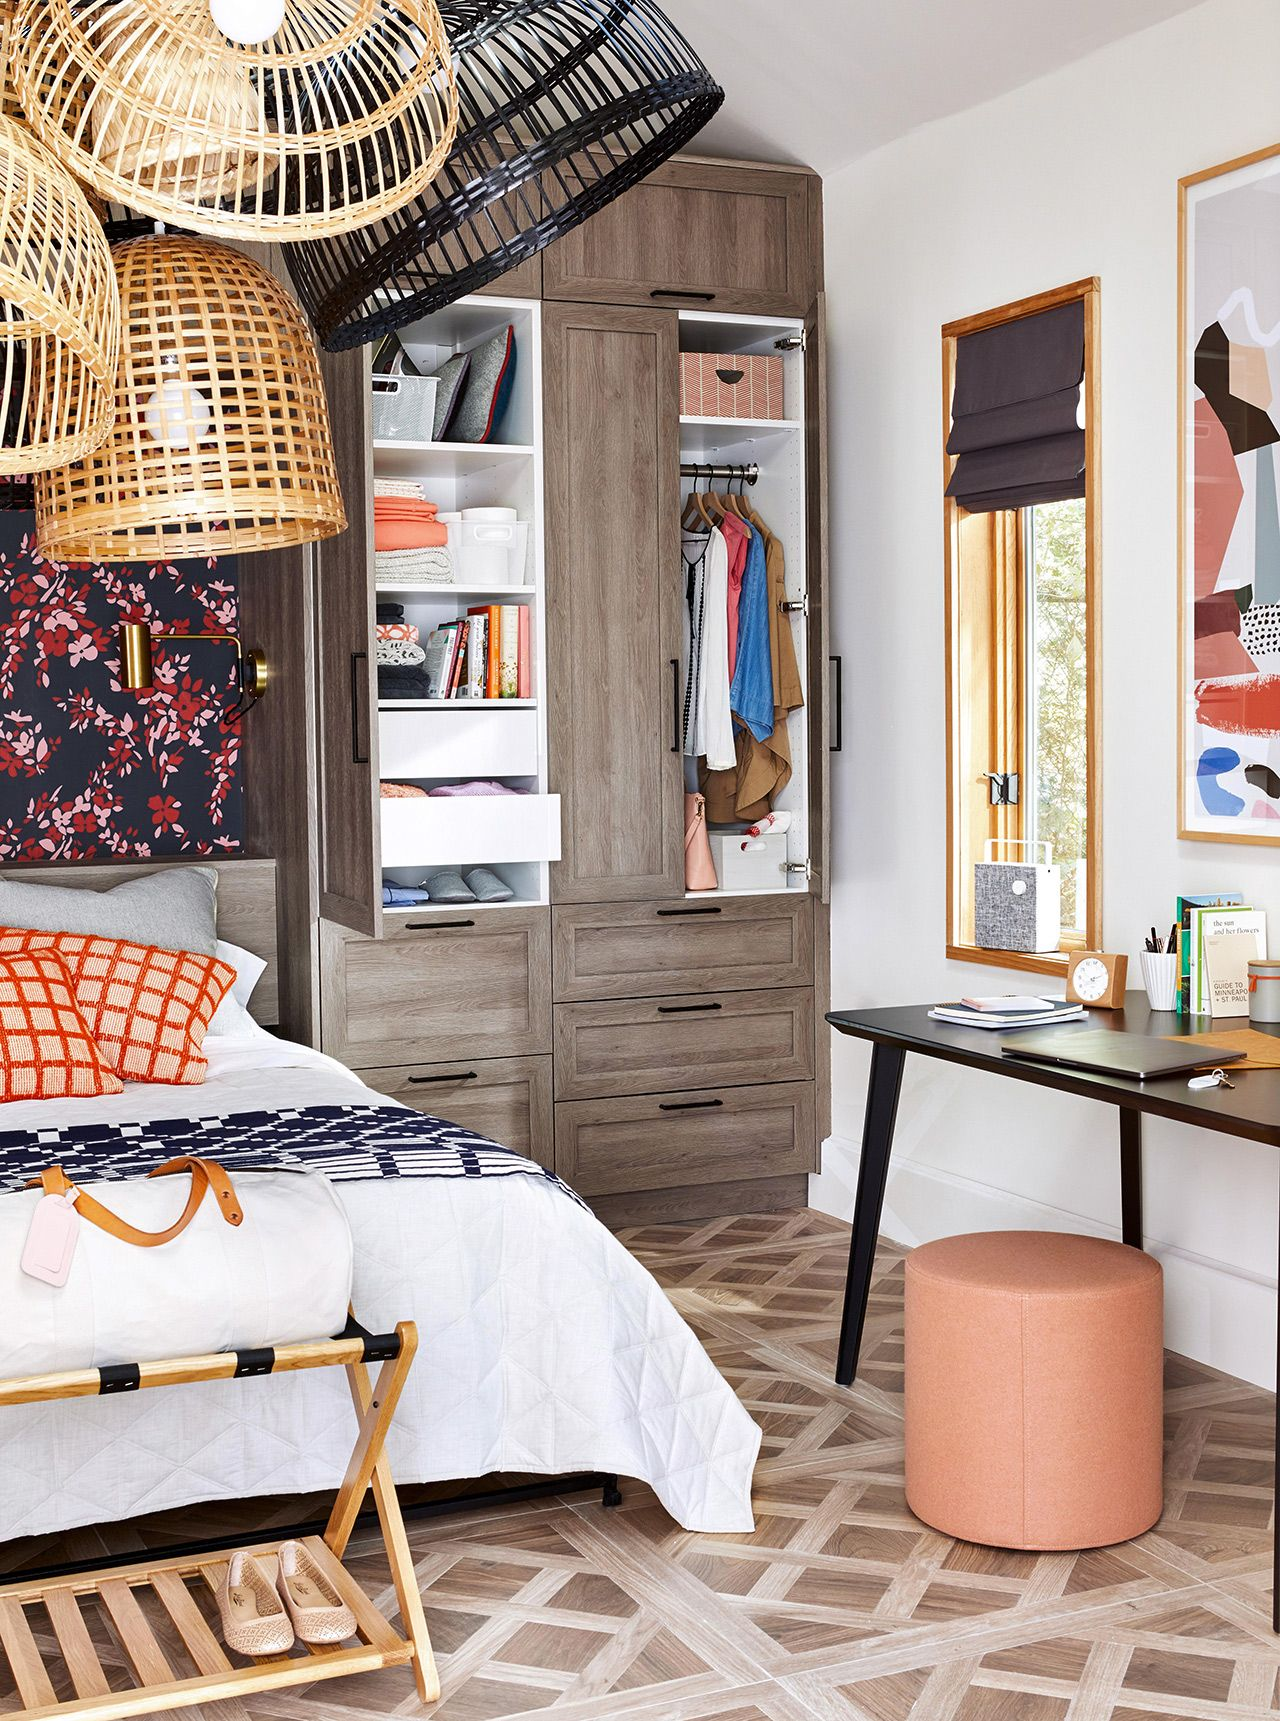 26 Clever Bedroom Storage Solutions for a More Organized Sleeping Space #storagesolutions